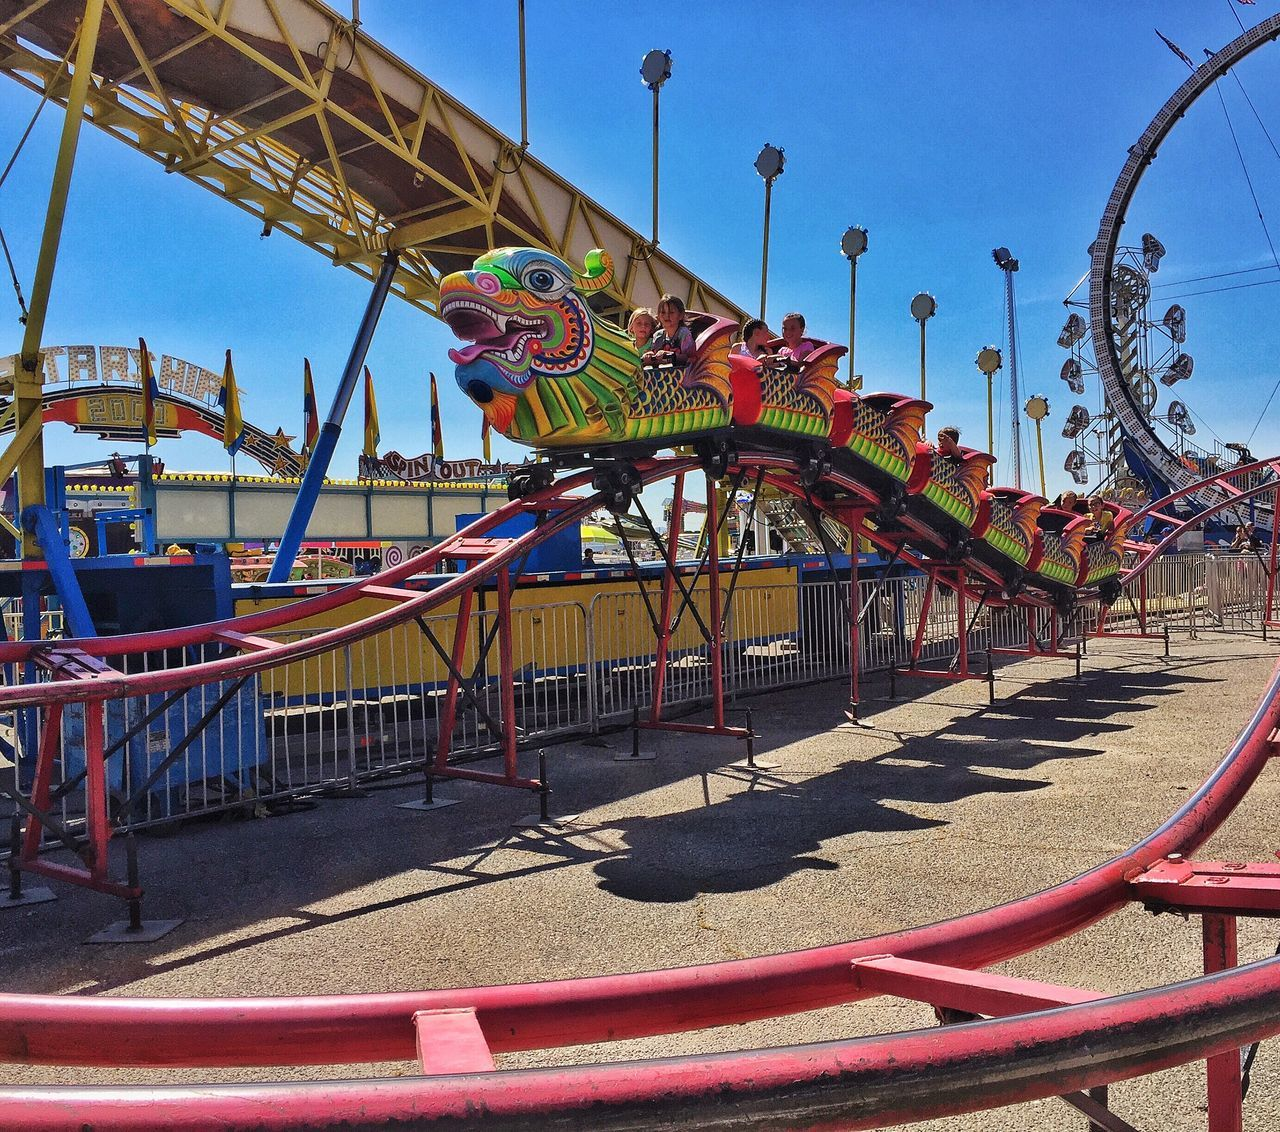 amusement park, arts culture and entertainment, amusement park ride, day, outdoors, fun, leisure activity, clear sky, multi colored, carousel, sunlight, sky, outdoor play equipment, built structure, merry-go-round, no people, nature